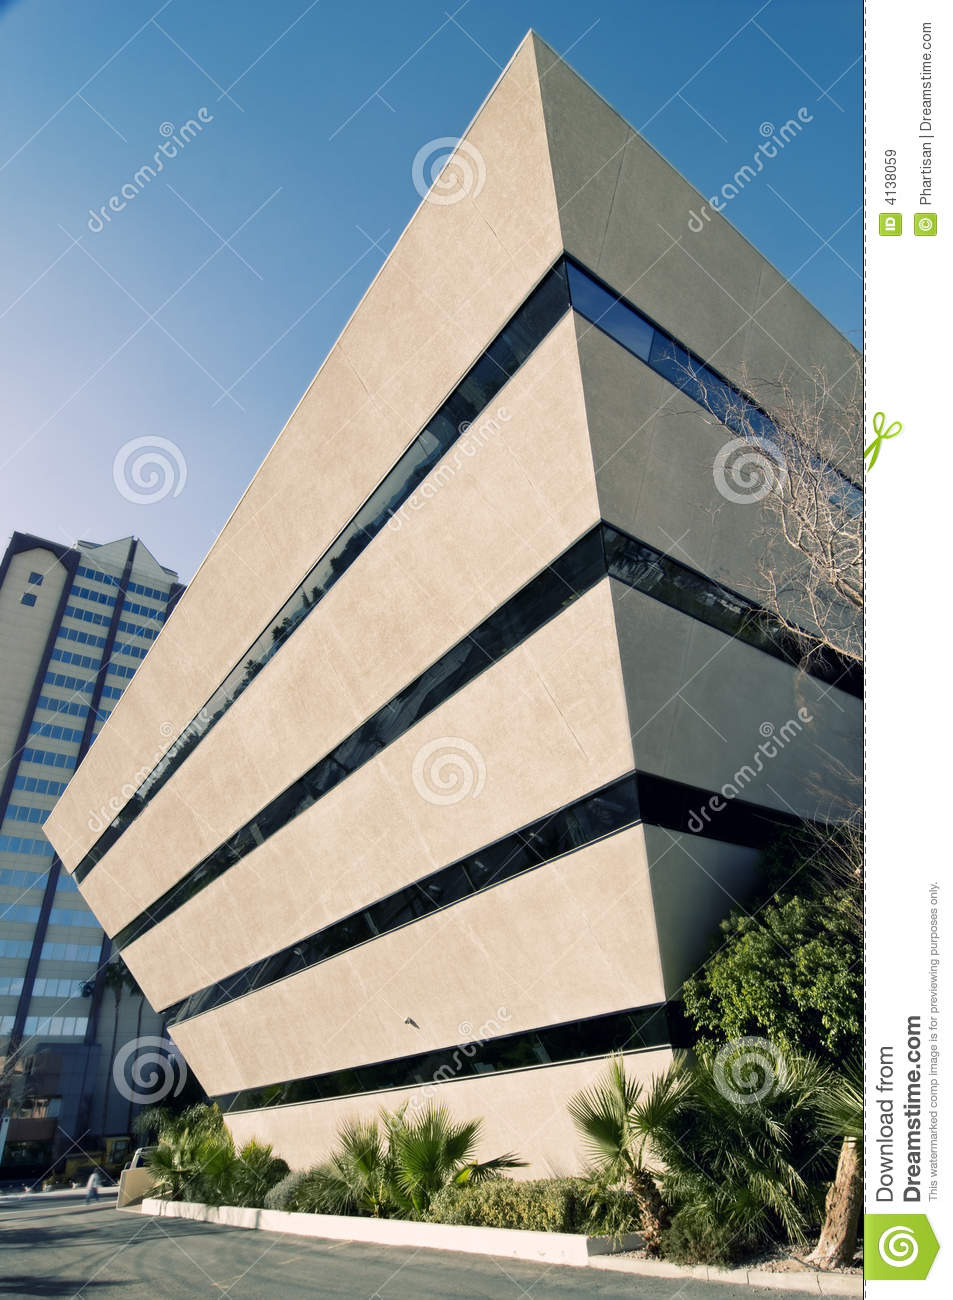 Pics for triangular buildings for Edificio de oficinas